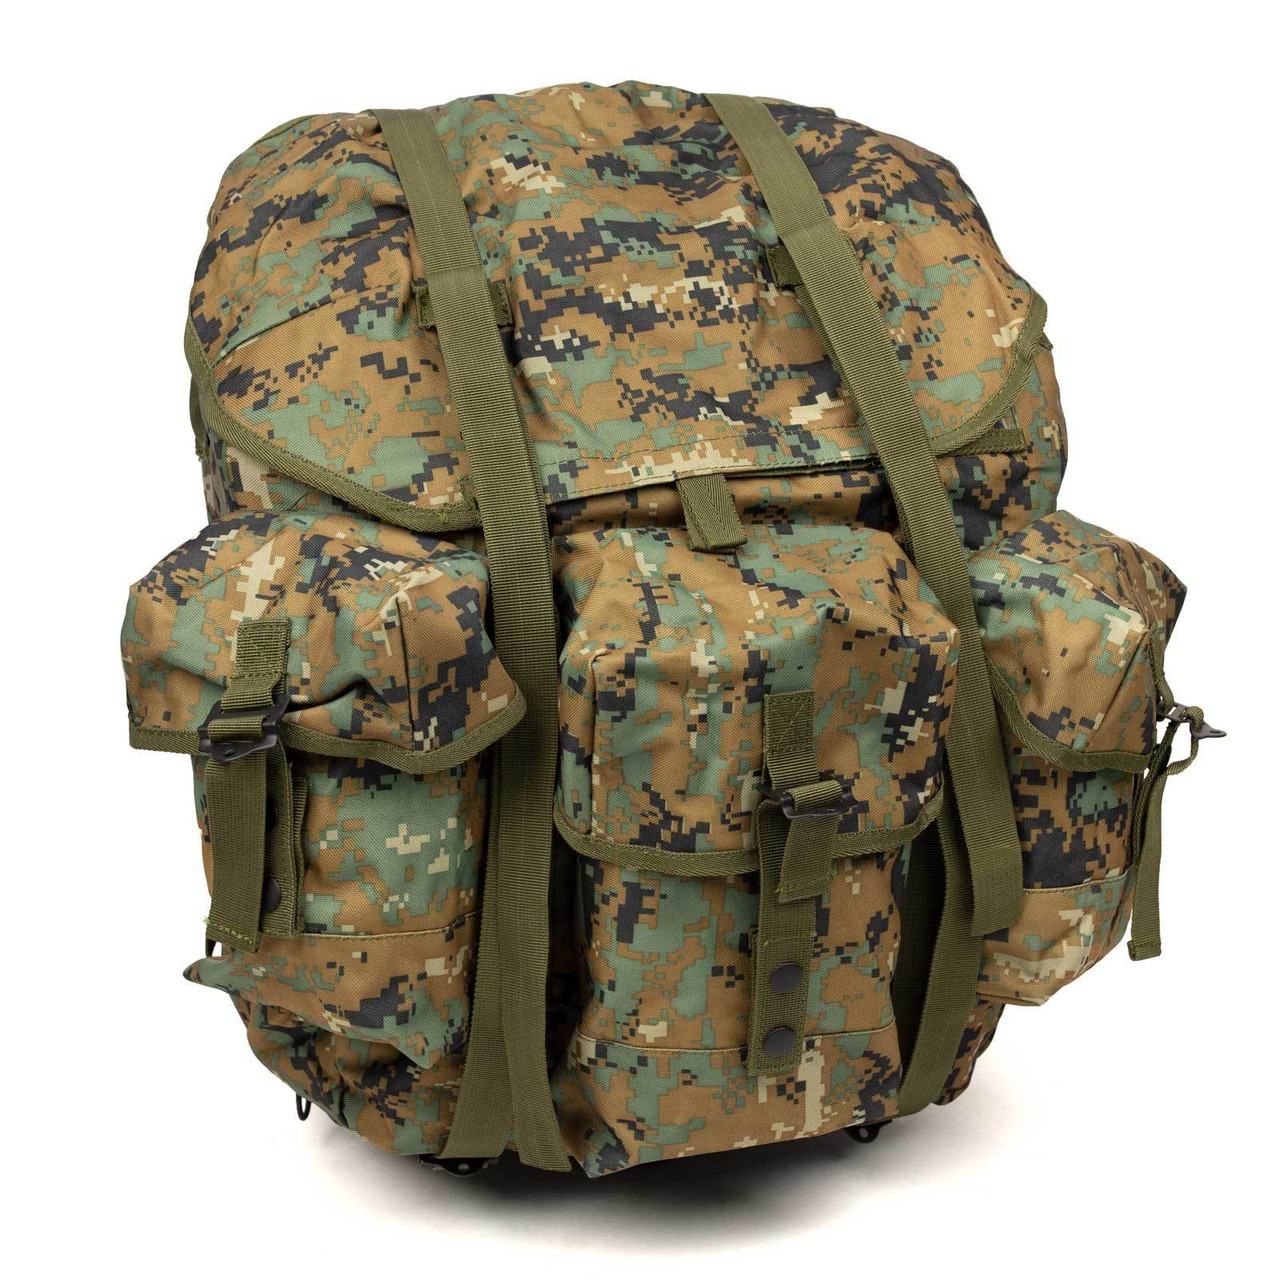 New Alice Pack MARPAT Style Multi-Camo, MADE IN GERMANY!